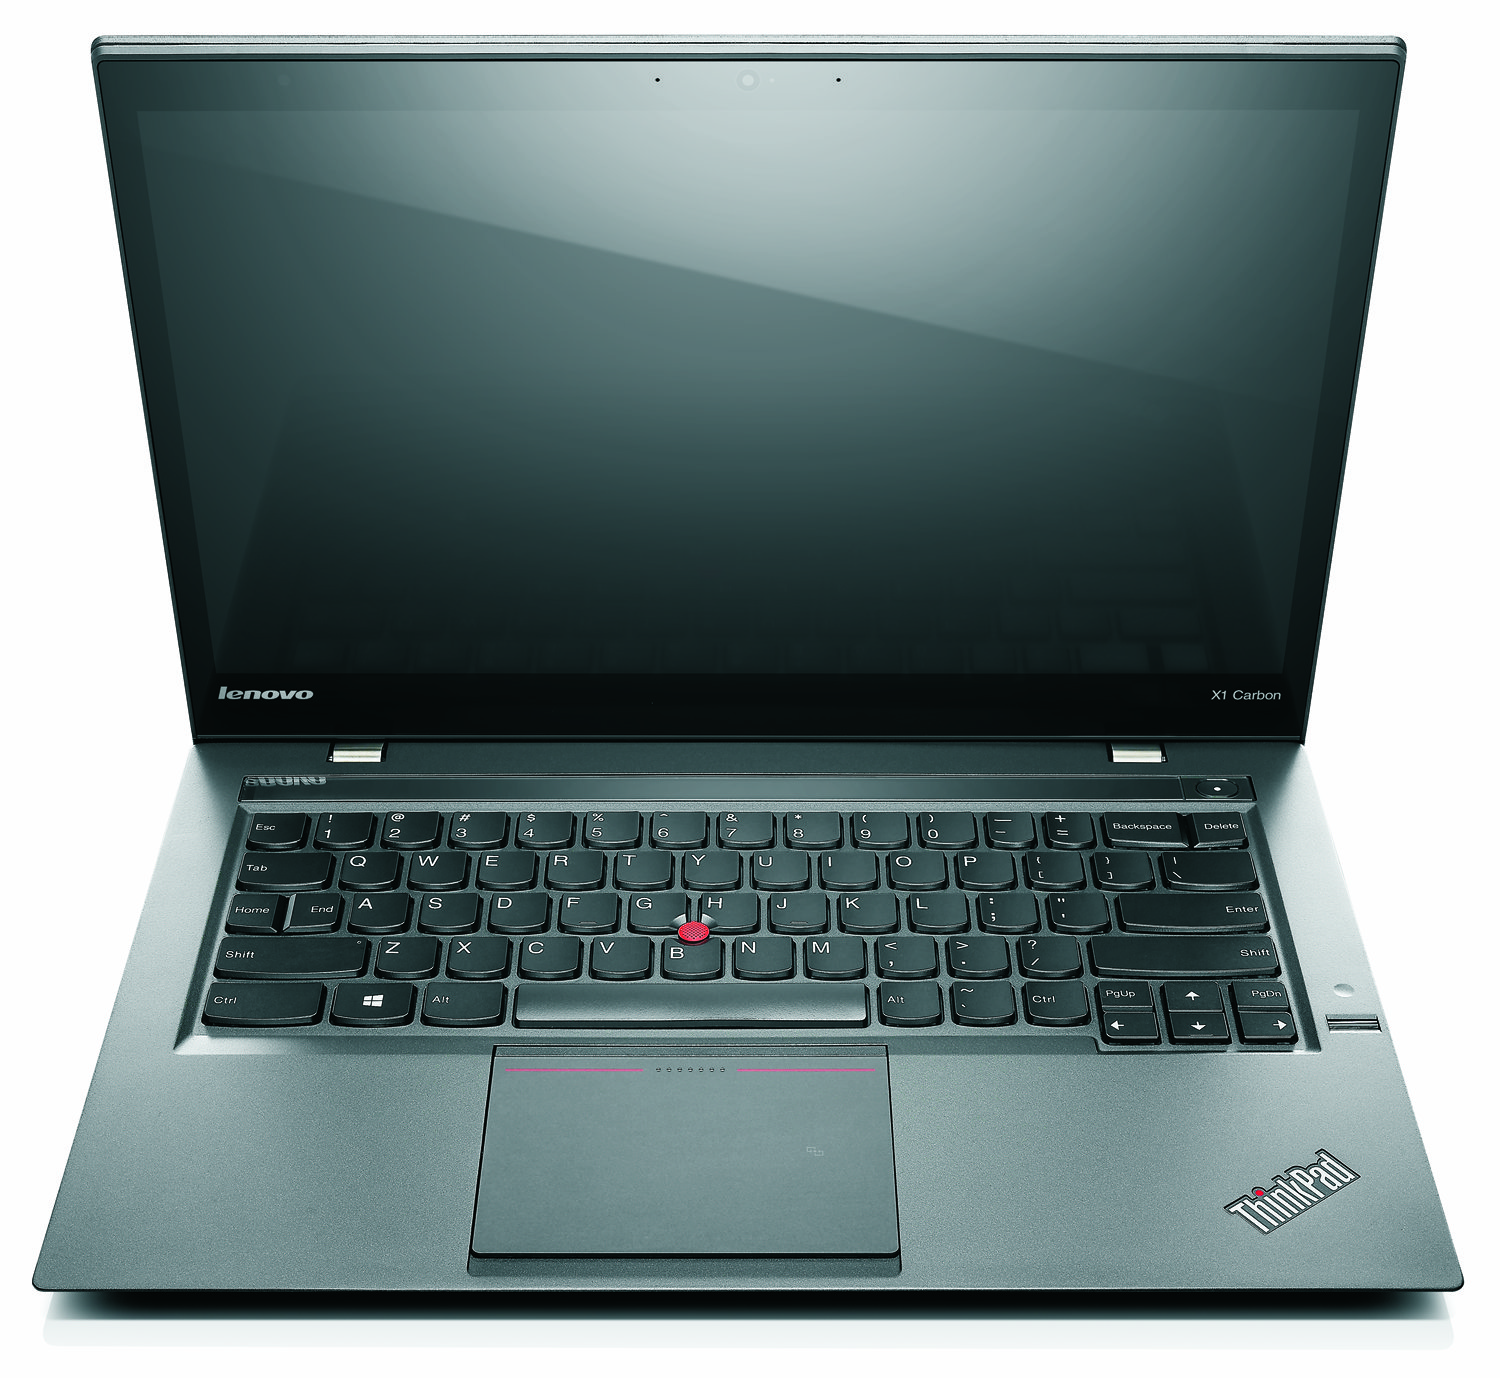 The ThinkPad X1 Carbon is a flagship from Lenovo.